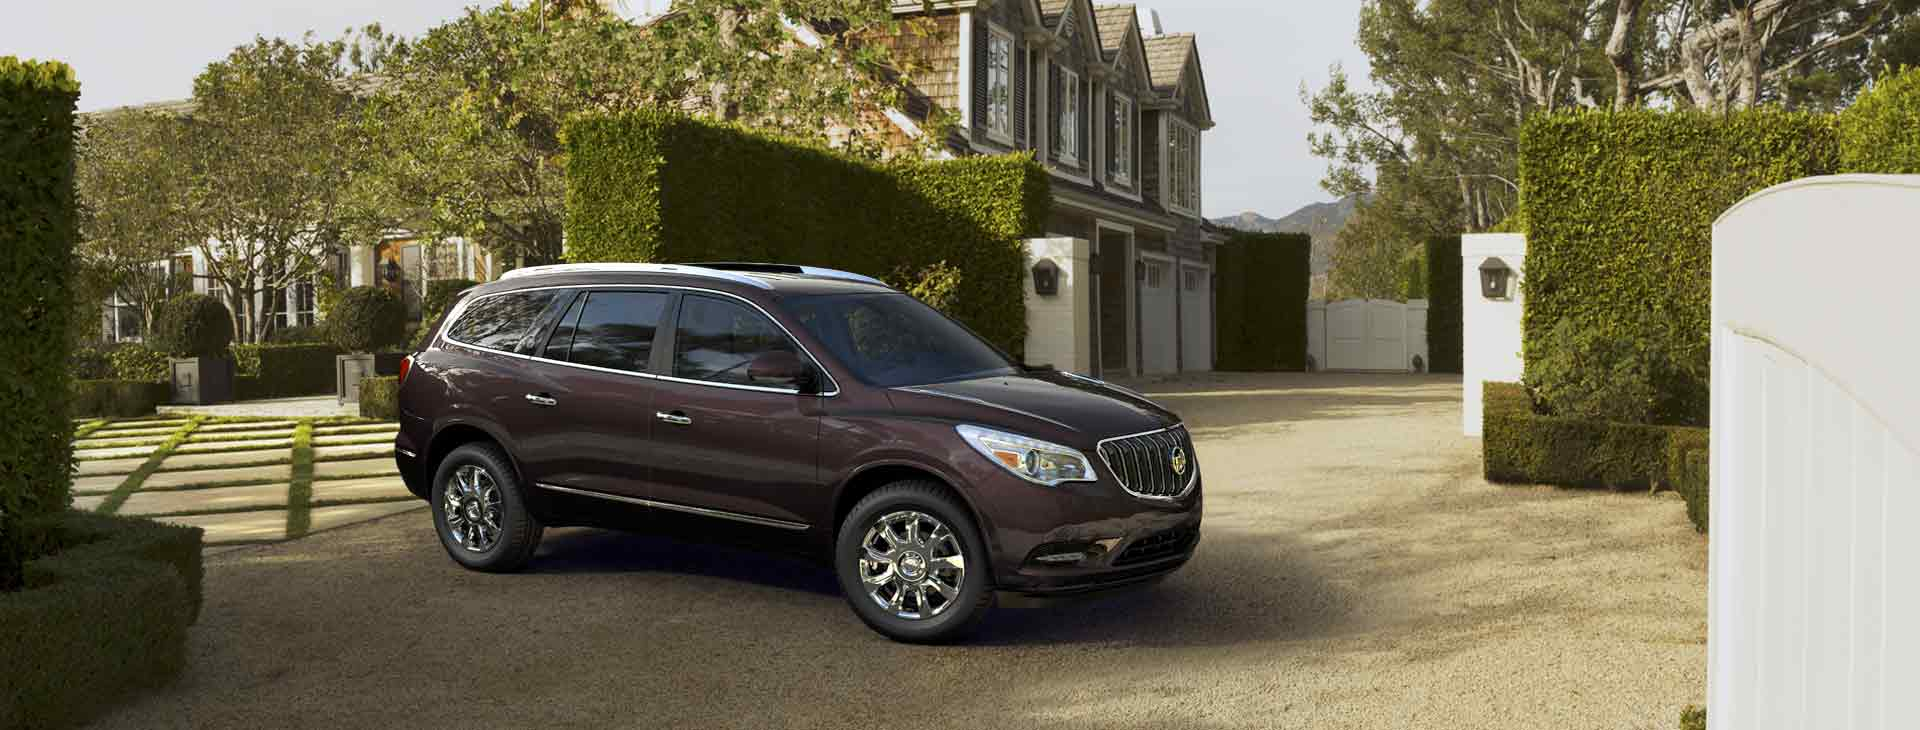 2016 Buick Enclave Info, Pictures, Specs, Wiki | Gm Authority Can A 2021 Buick Enclave Be Flat Towed